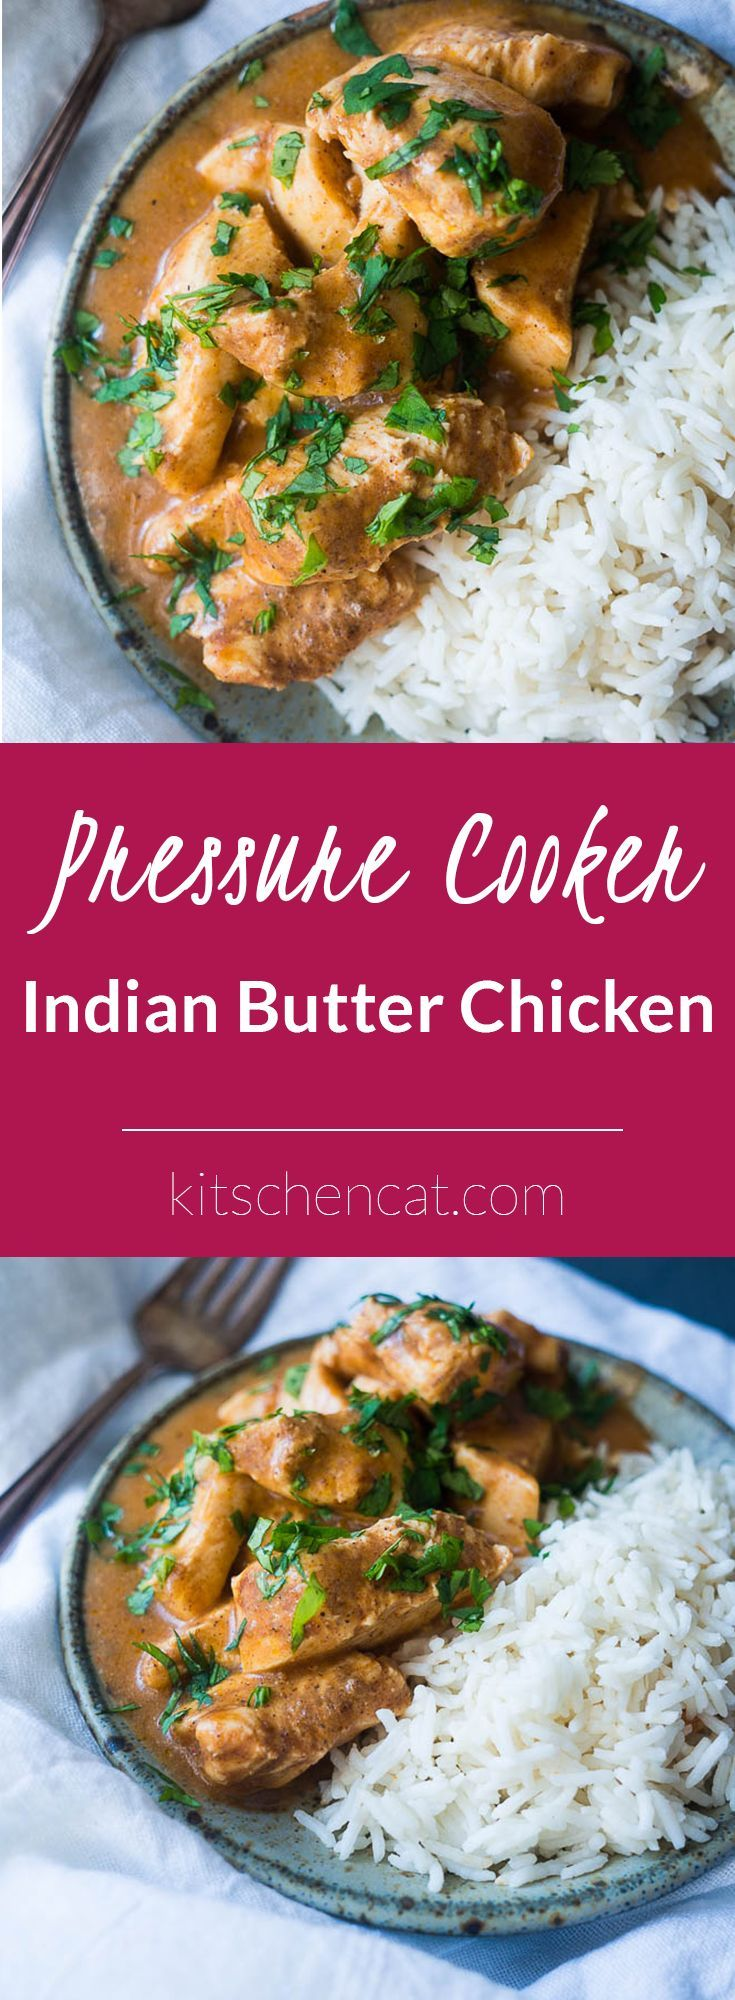 Pressure Cooker Indian Butter Chicken. A rich and creamy indian curry made in less than 15 minutes in the pressure cooker. Sprinkle with chopped cilantro and serve on top of basmati rice for a night of make at home take-out!